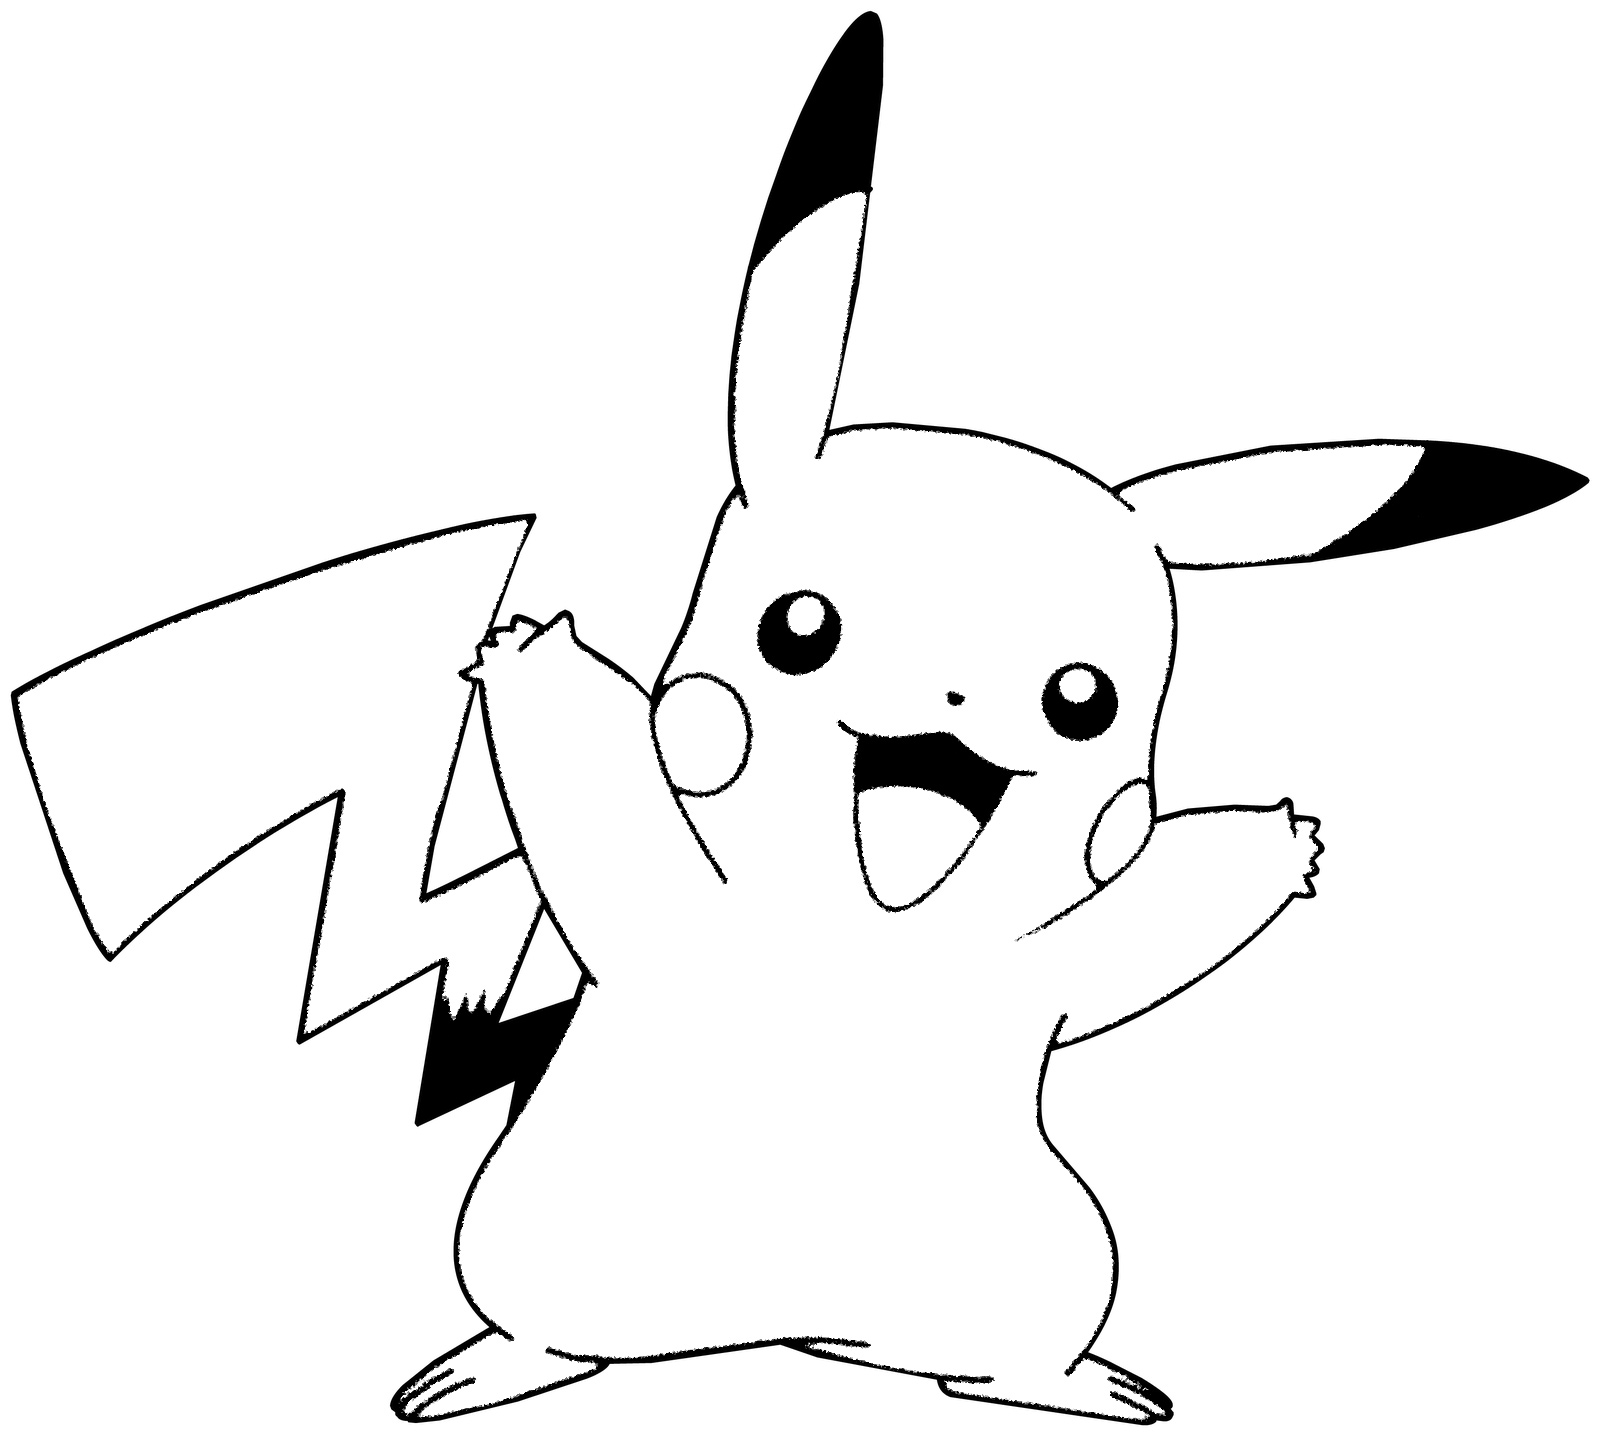 Pikachu cheering coloring page